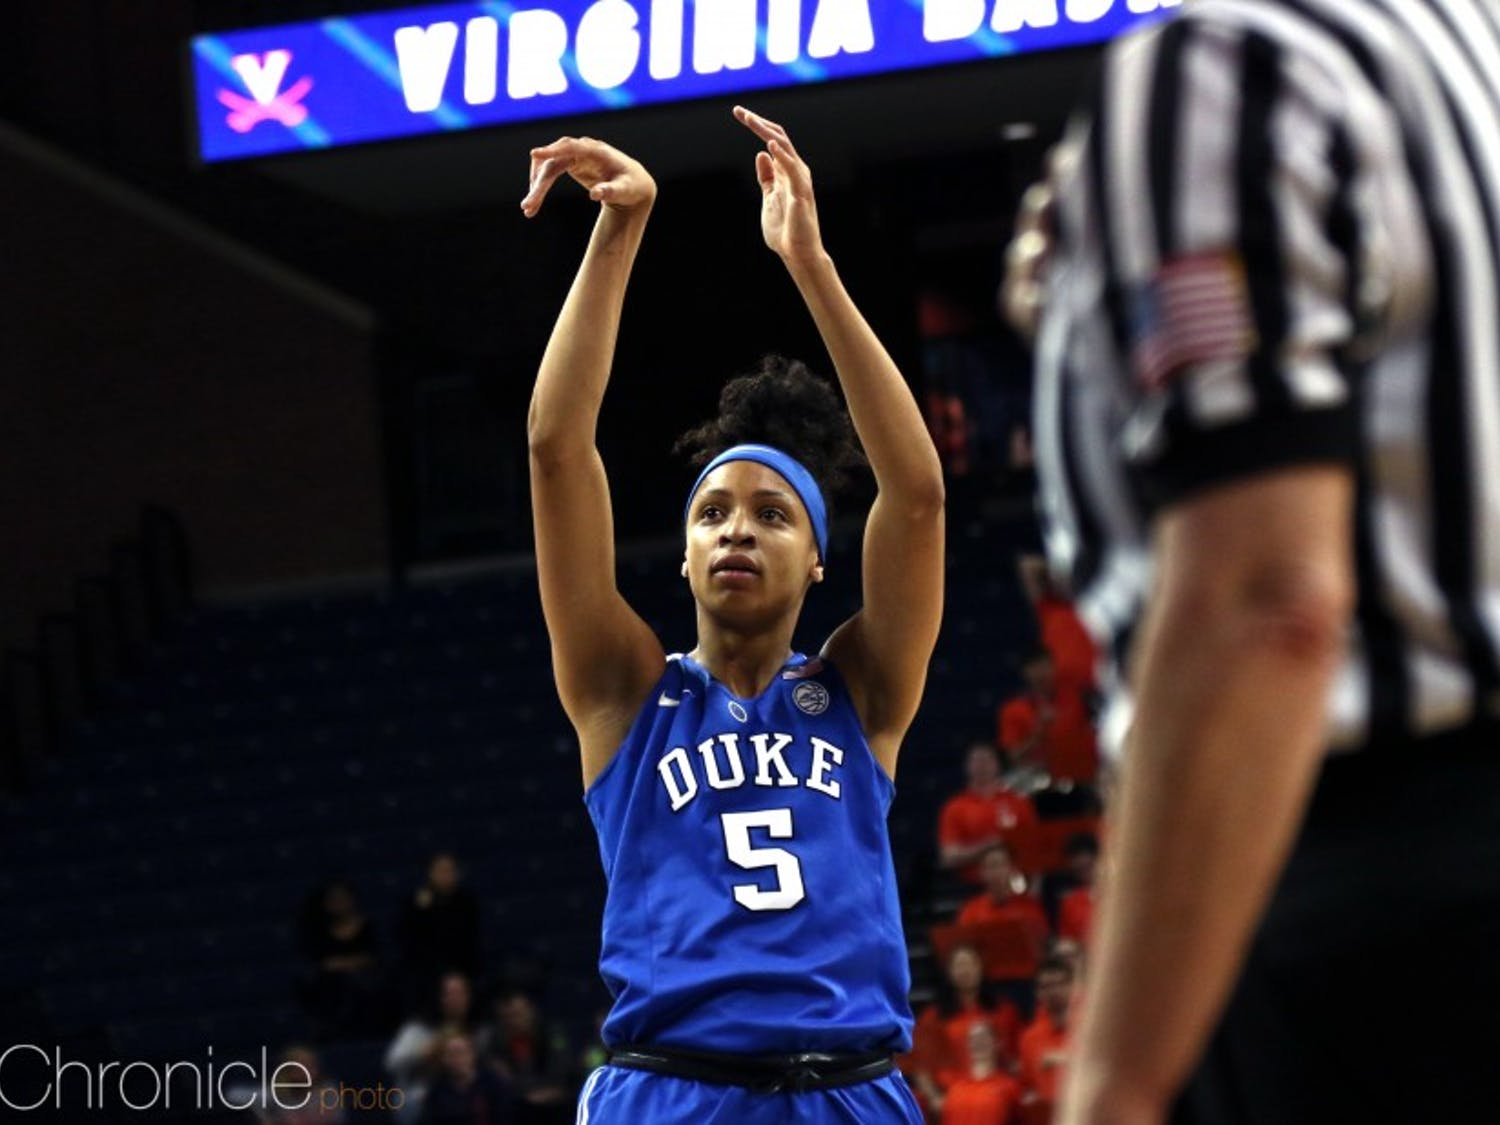 Leaonna Odom, alongside Haley Gorecki, will be a key playmaker for the Blue Devils this season.